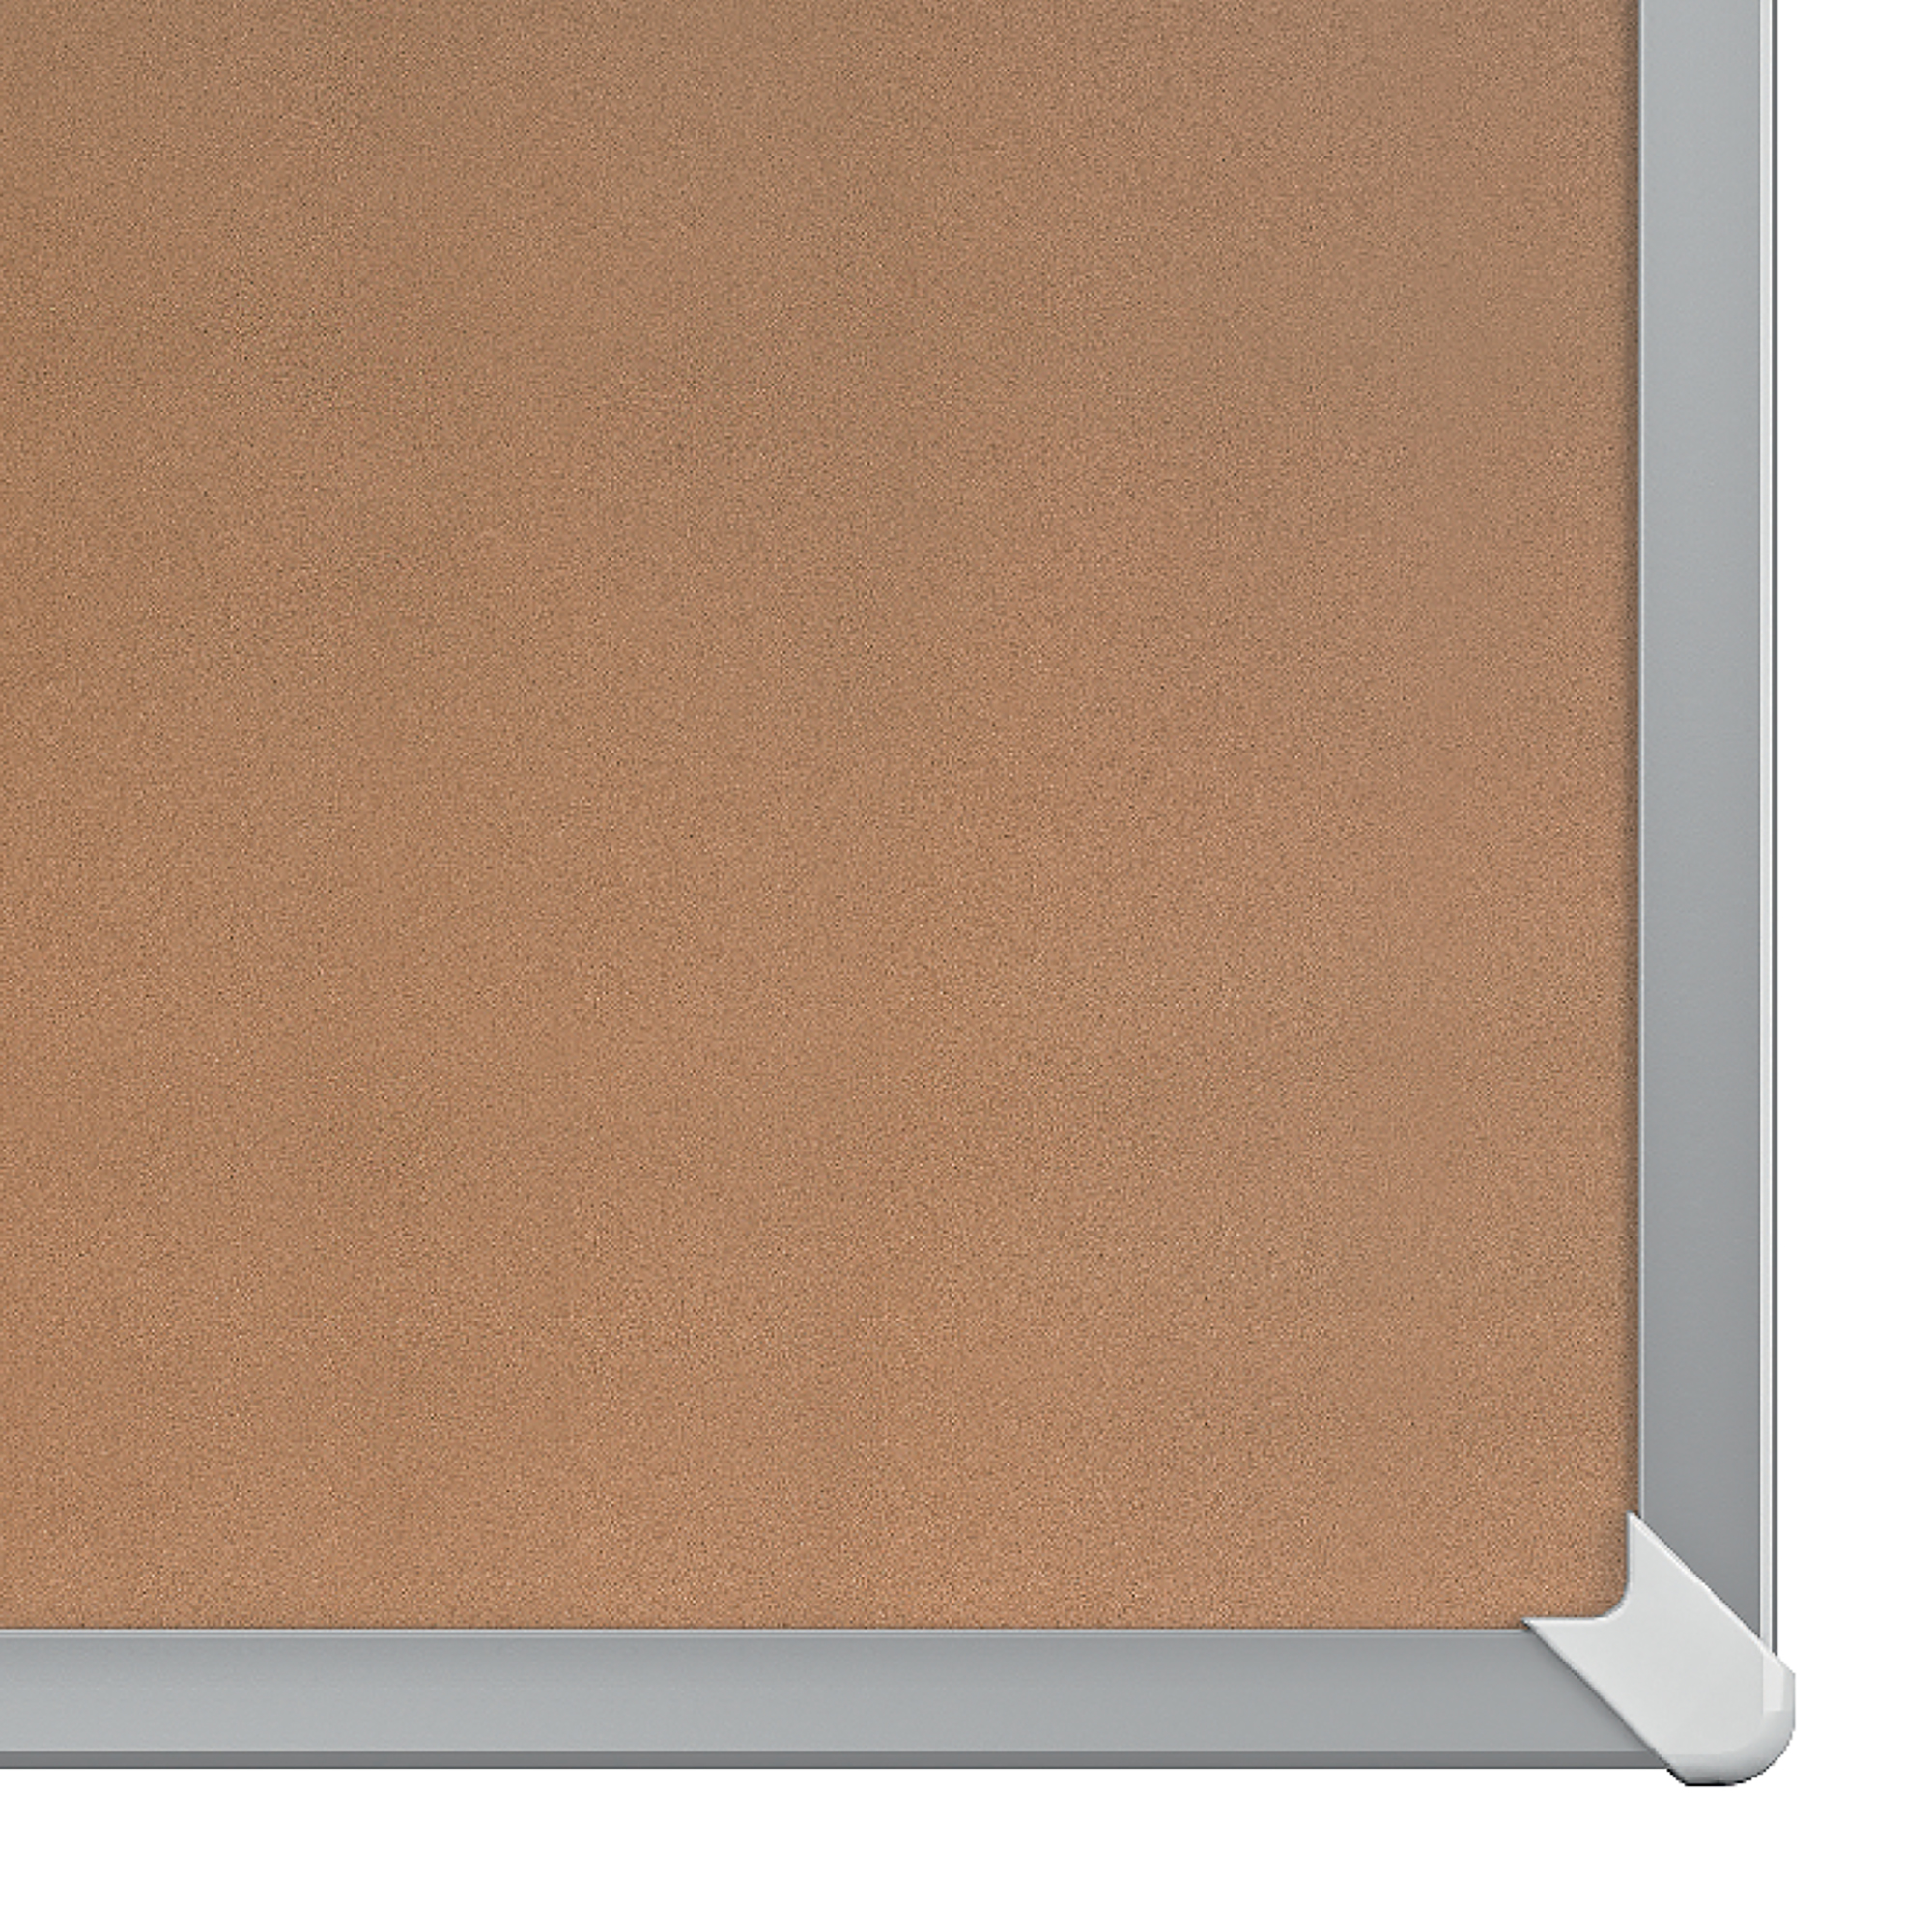 Bulletin boards or accessories Nobo 55 inch Widescreen Cork Notice Board 1220x690mm Ref 1905308